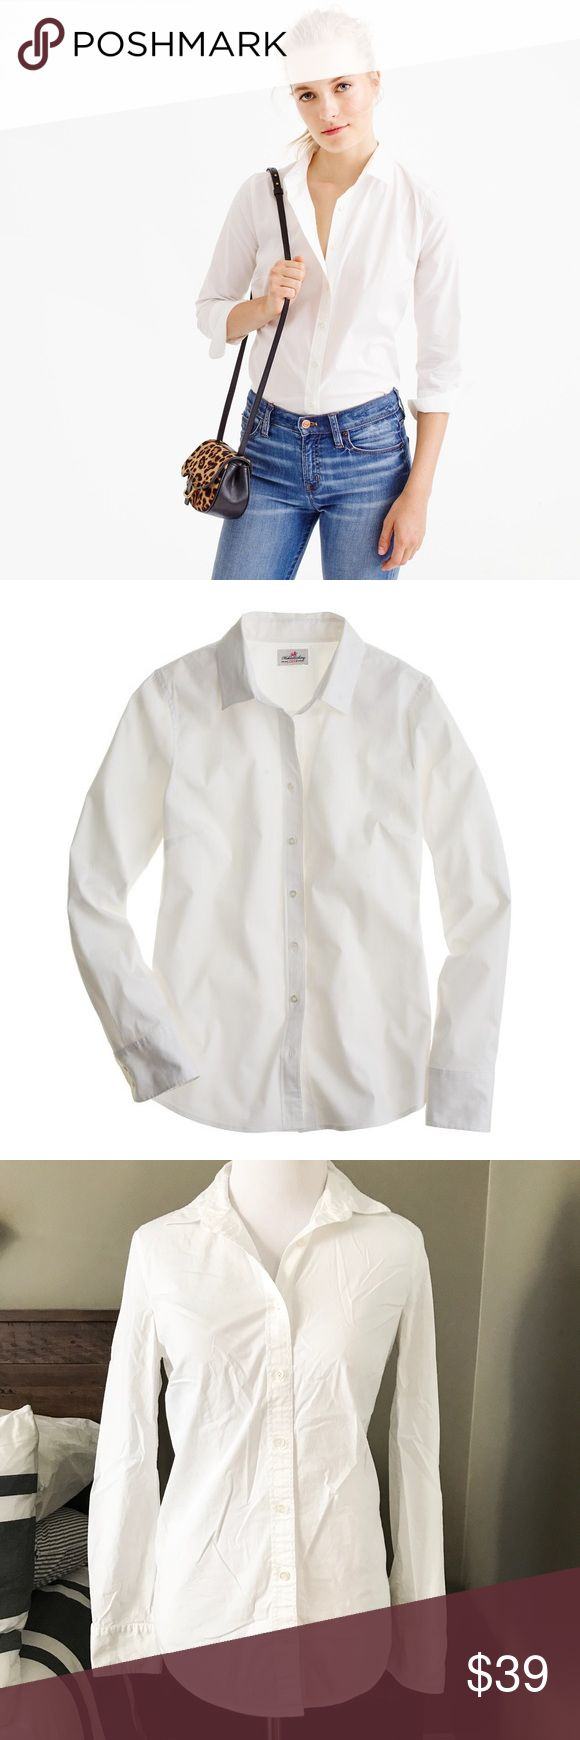 J. Crew Stretch Perfect Shirt in White Classic crisp Button Down Shirt from J. Crew. Perfectly tailored for a flattering fit. These button downs are a staple in my closet. They machine wash well and they fit amazing! Size XS. Excellent condition. No flaws. No stains. Currently full price on the website. J. Crew Tops Button Down Shirts